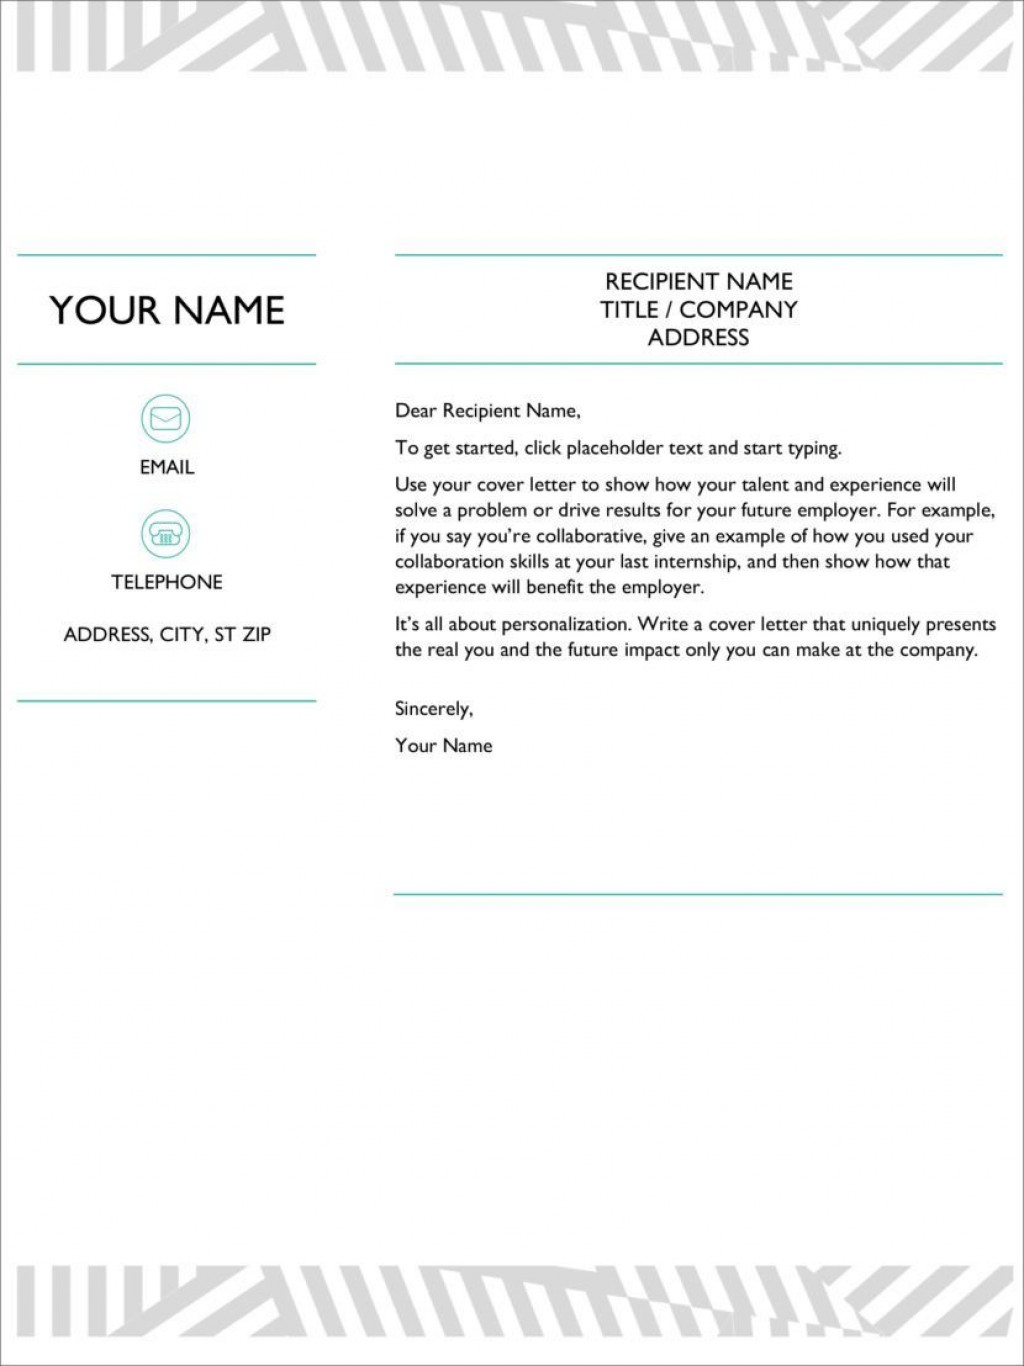 004 Rare Cover Letter Template Download Microsoft Word Image  Free ResumeLarge